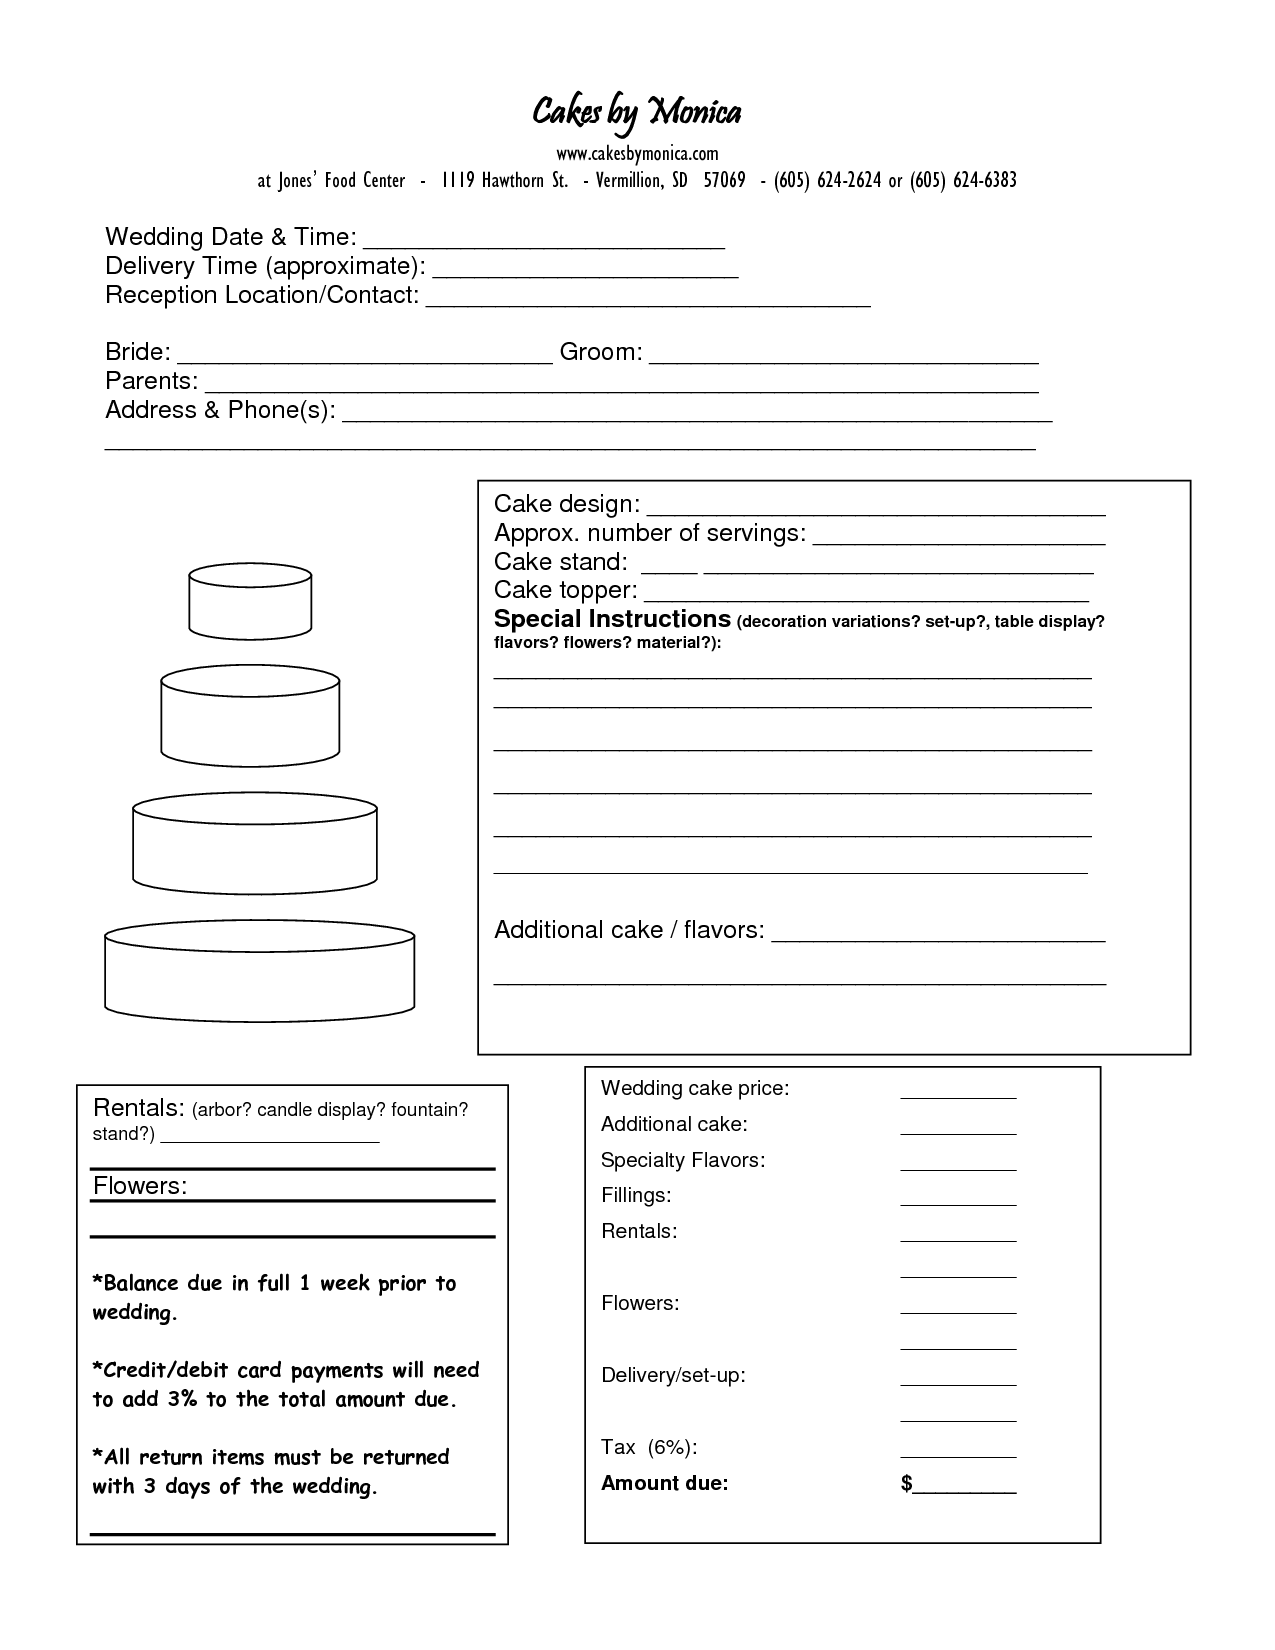 Sample Cupcake Order Form 10 Free Documents In Pdf